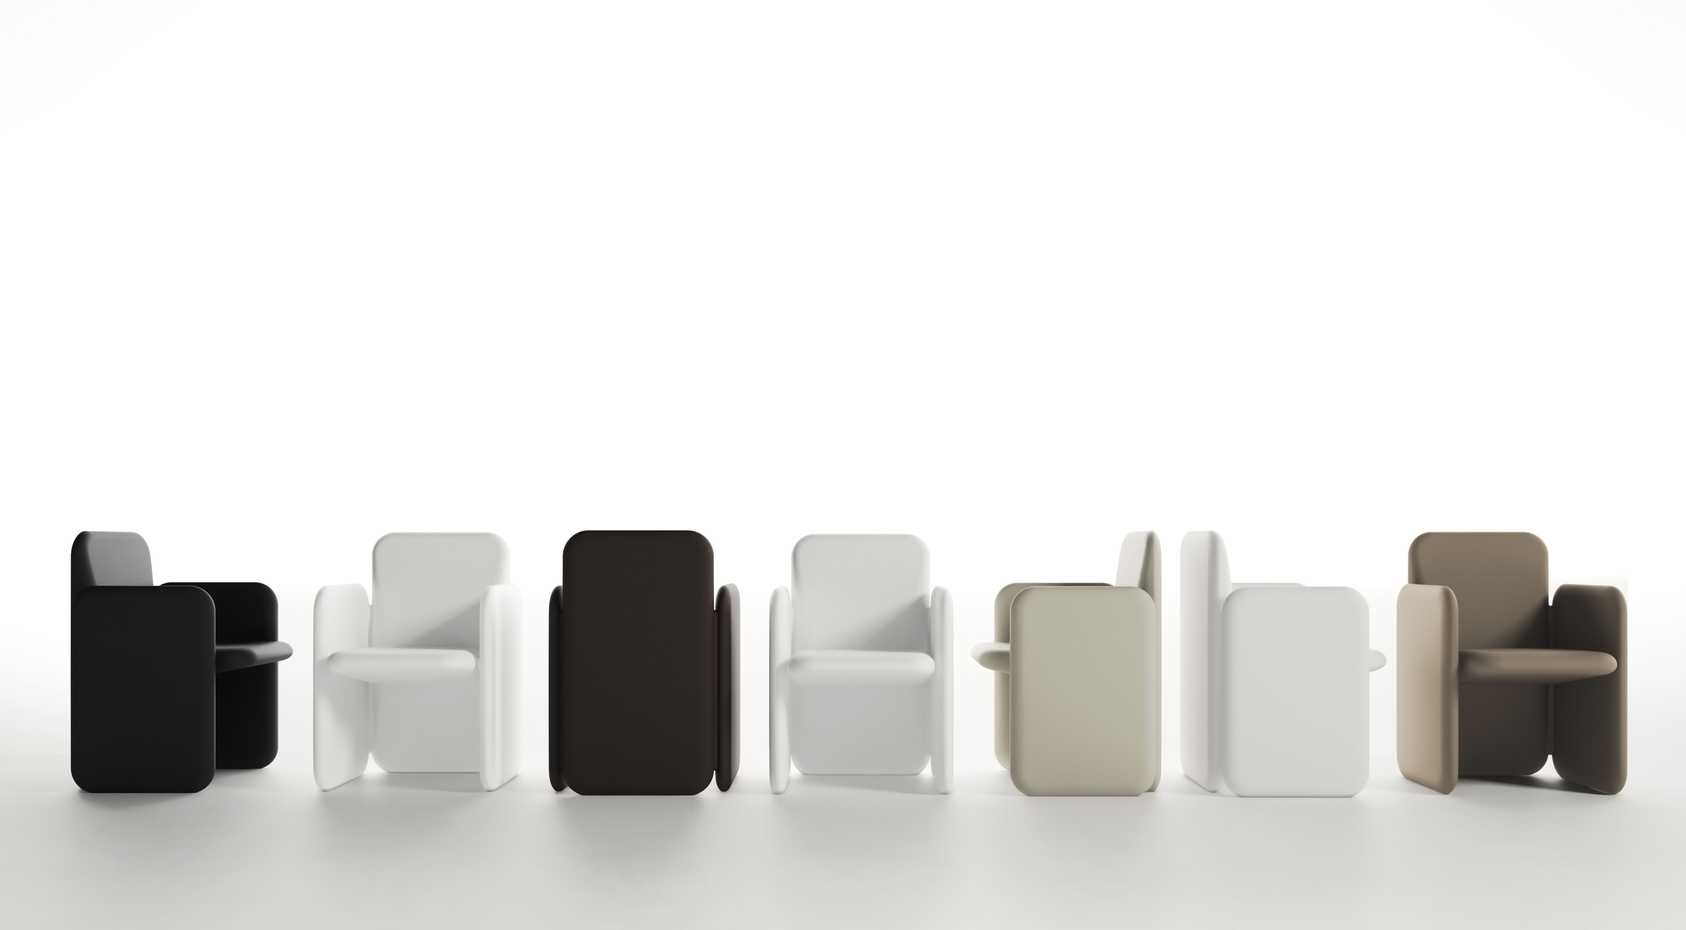 Big Armchair by Gandia Blasco product image 2